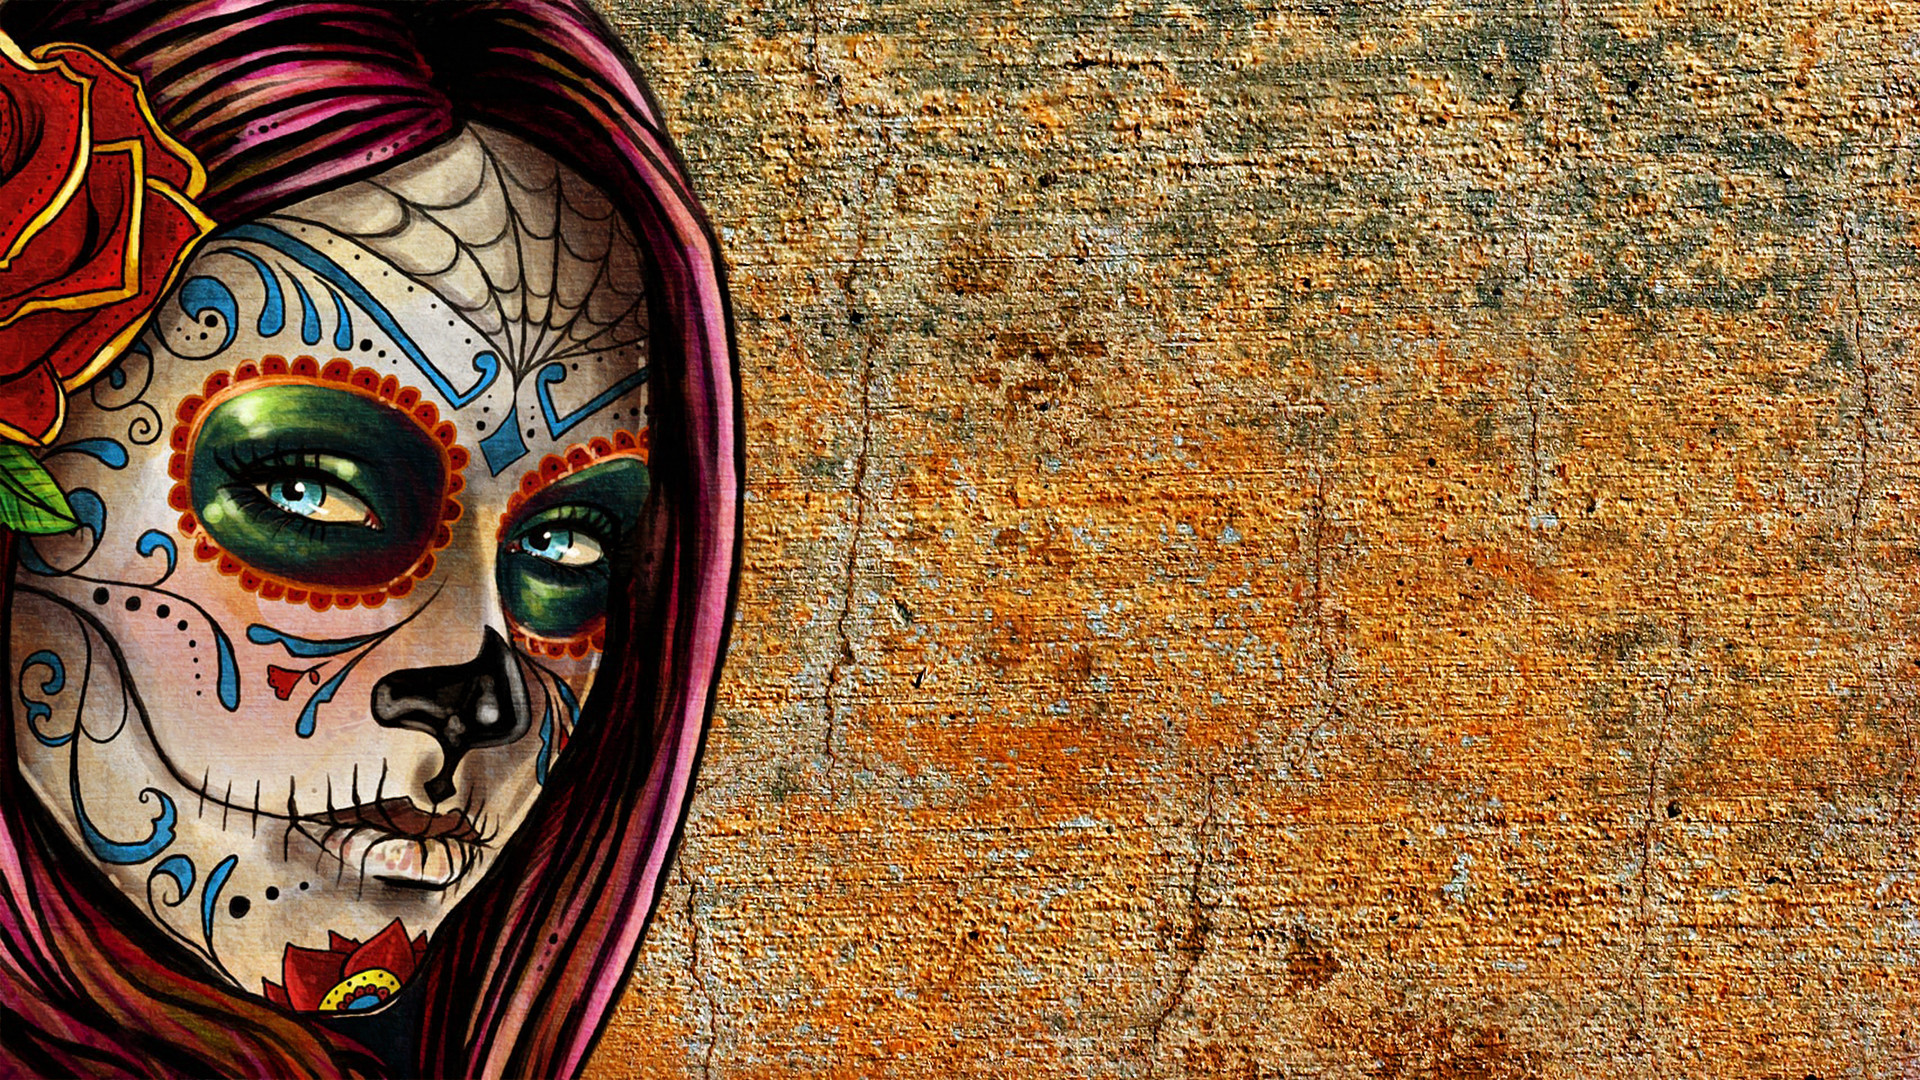 Skull wallpapers images 56 images 1920x1080 free d skull wallpapers wallpaper voltagebd Images